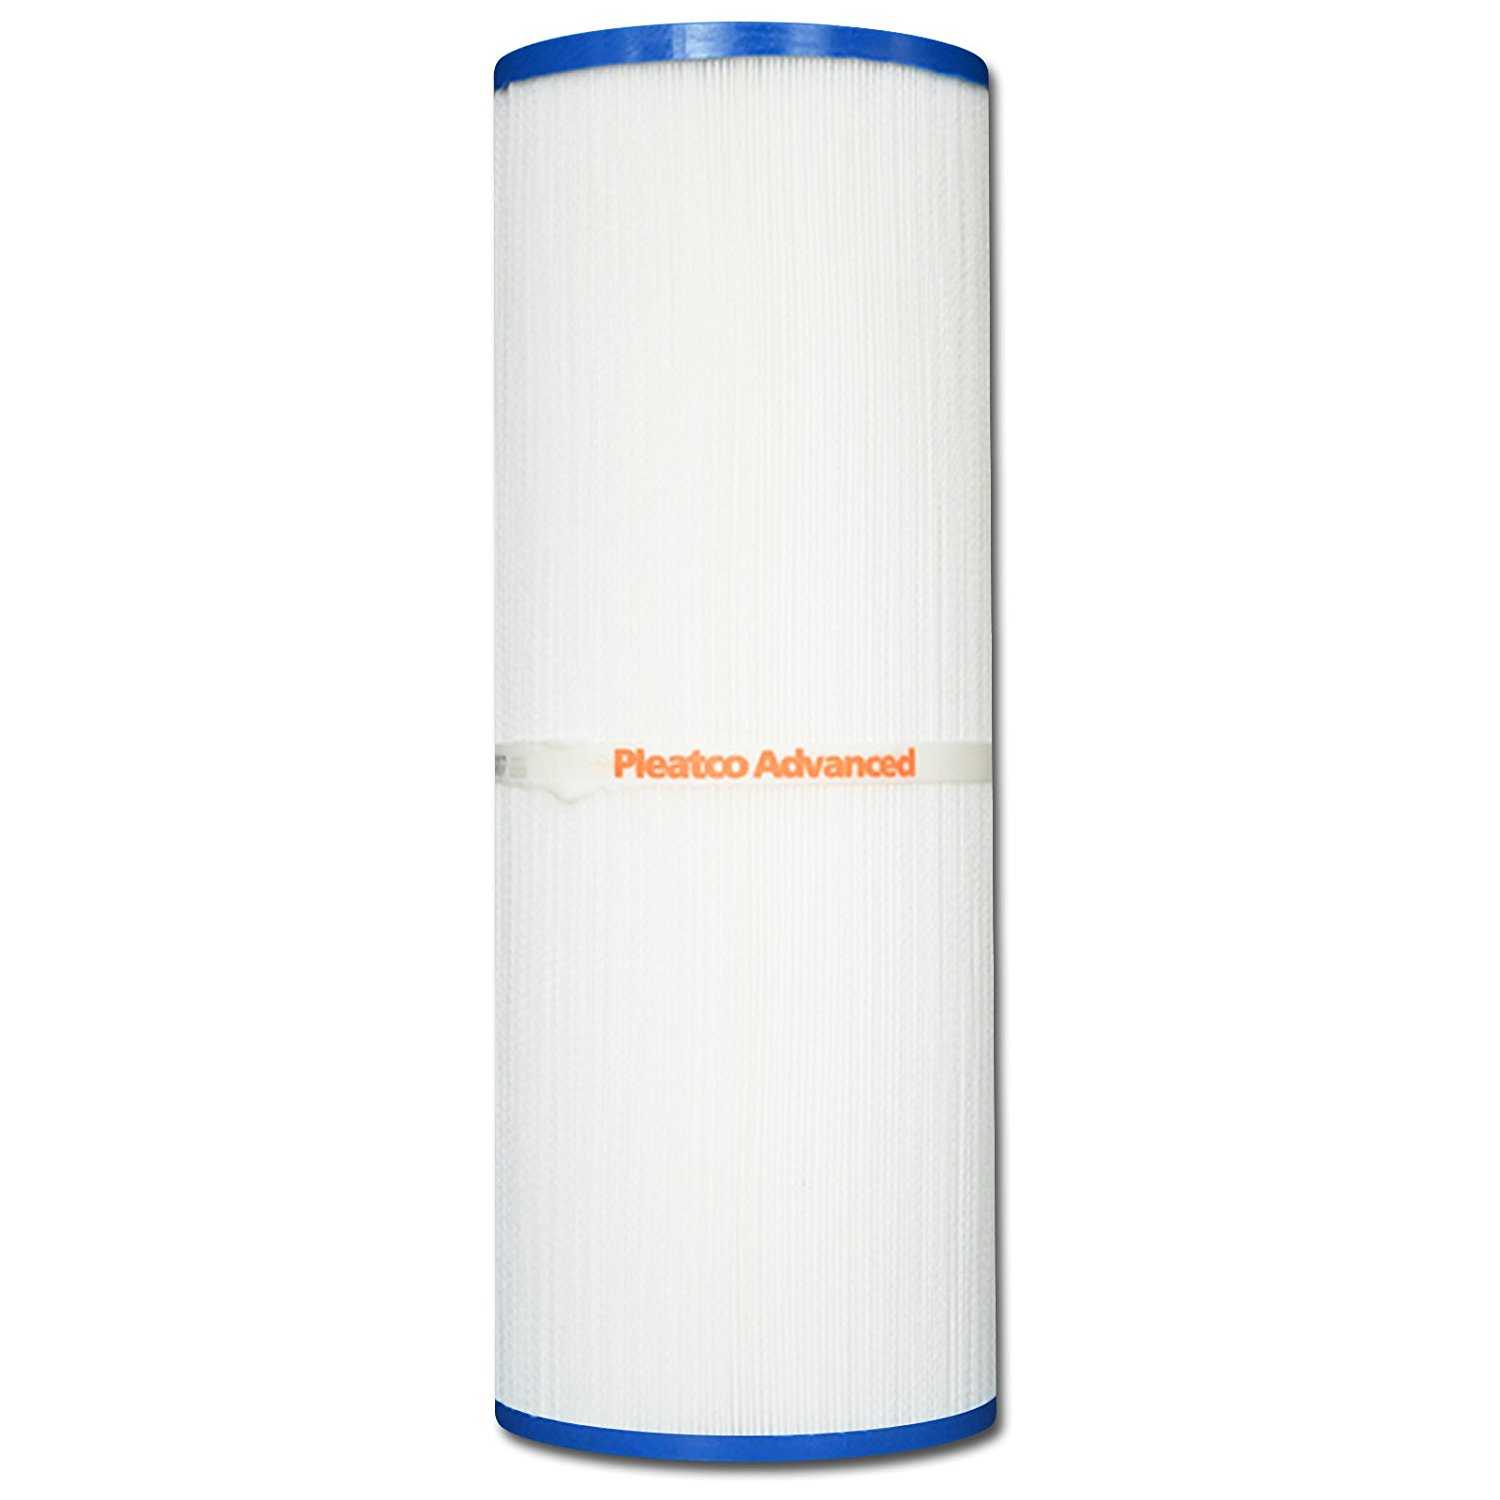 Pleatco PRB50-IN Spa Pool Filter